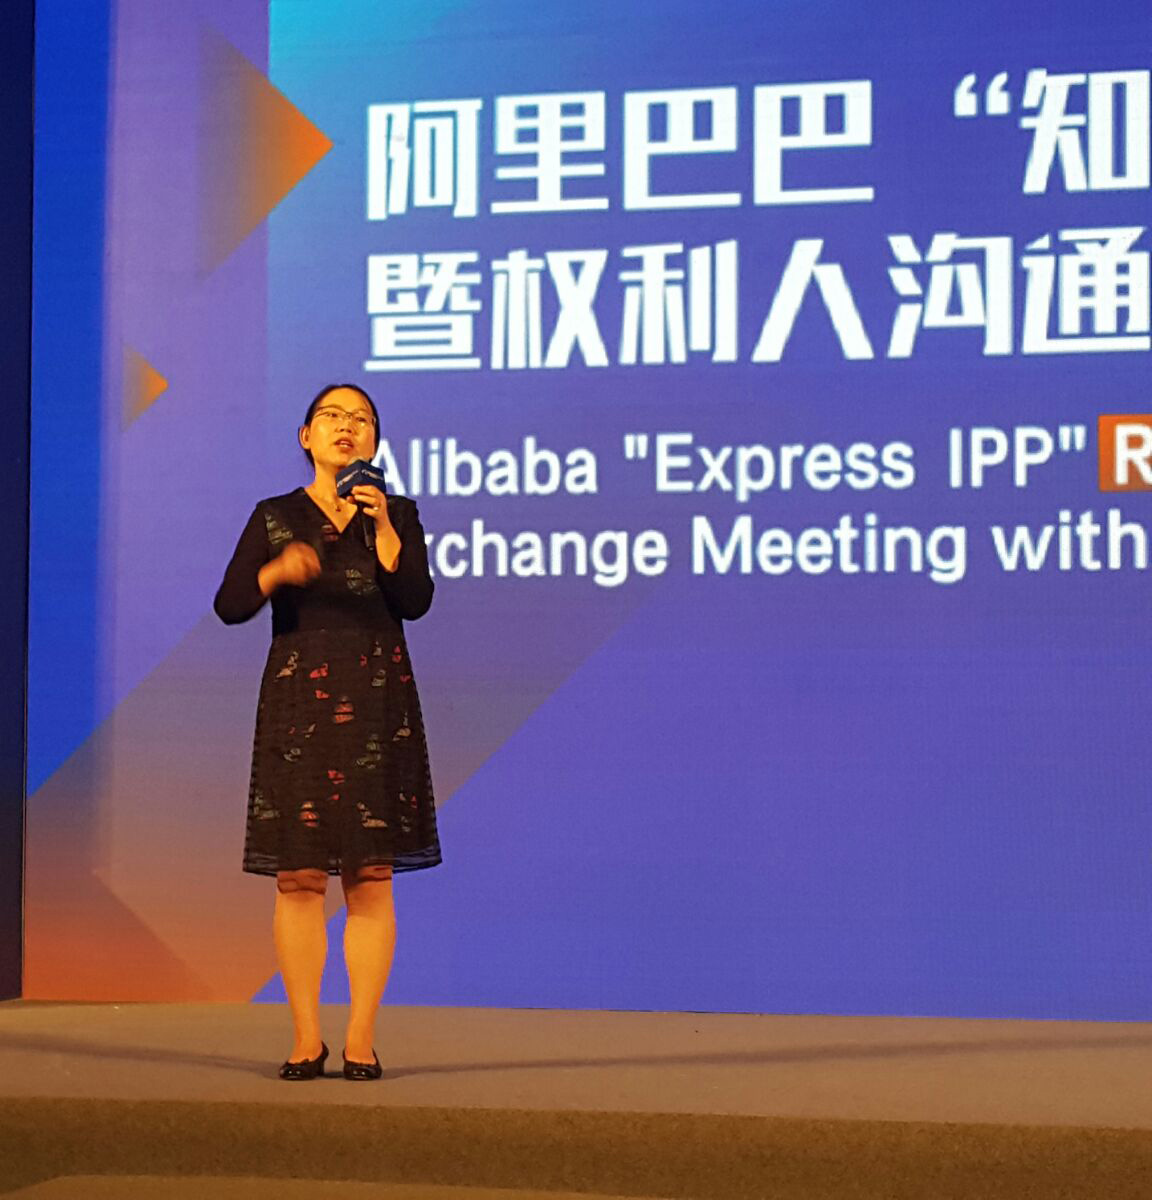 Intellectual Property Protection: Alibaba Makes Key Enhancements To Intellectual Property